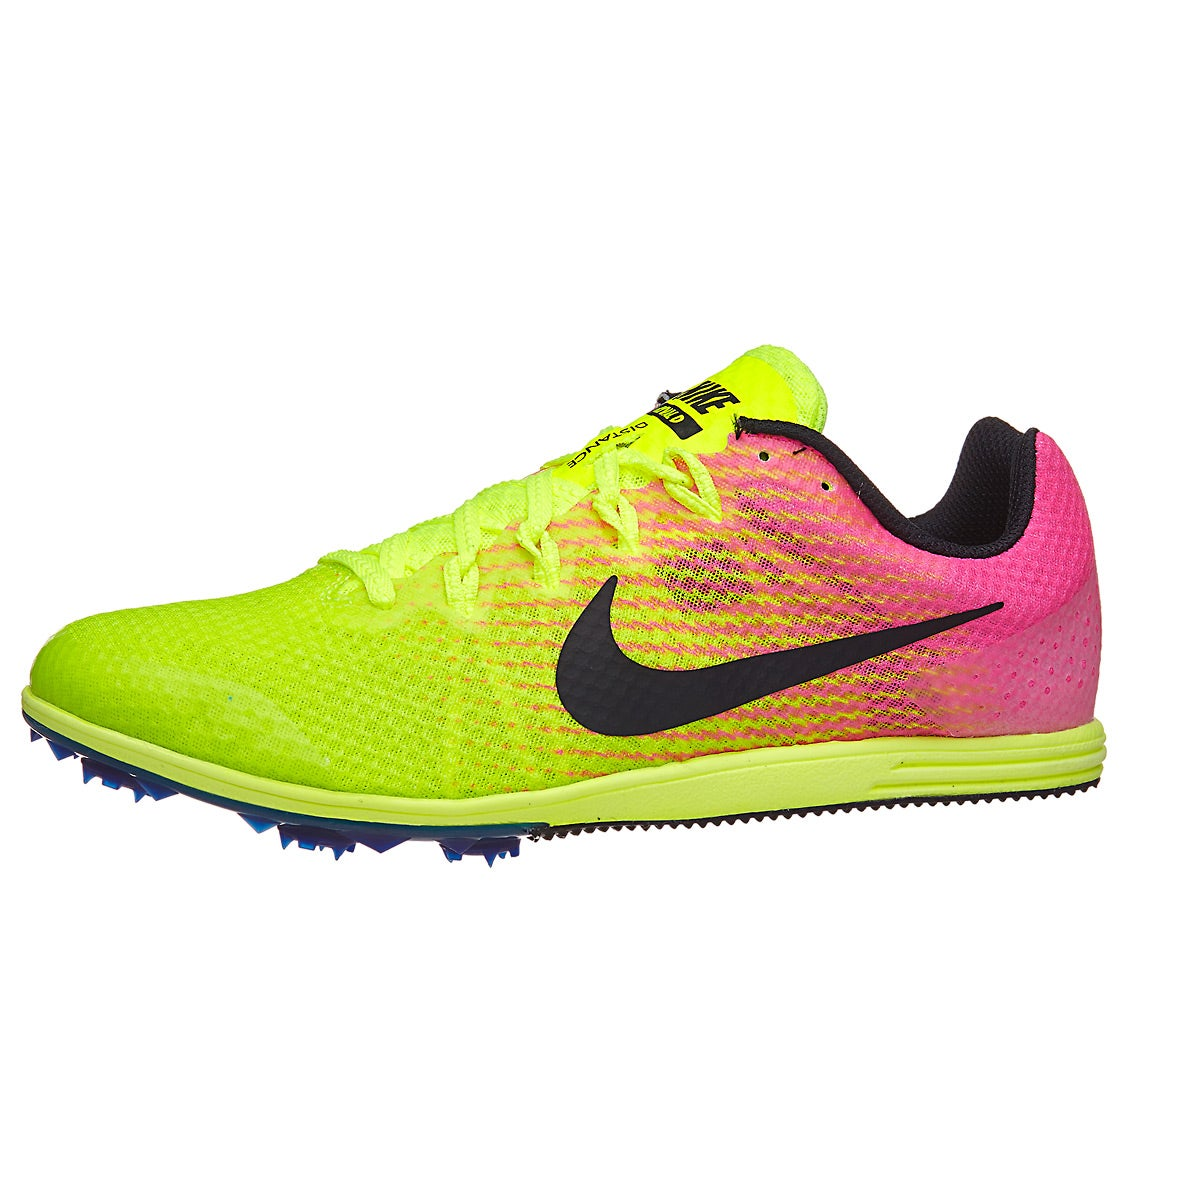 a5a7a129c3b8fc Nike Zoom Rival D 9 OC Men s Spikes Multi 360° View